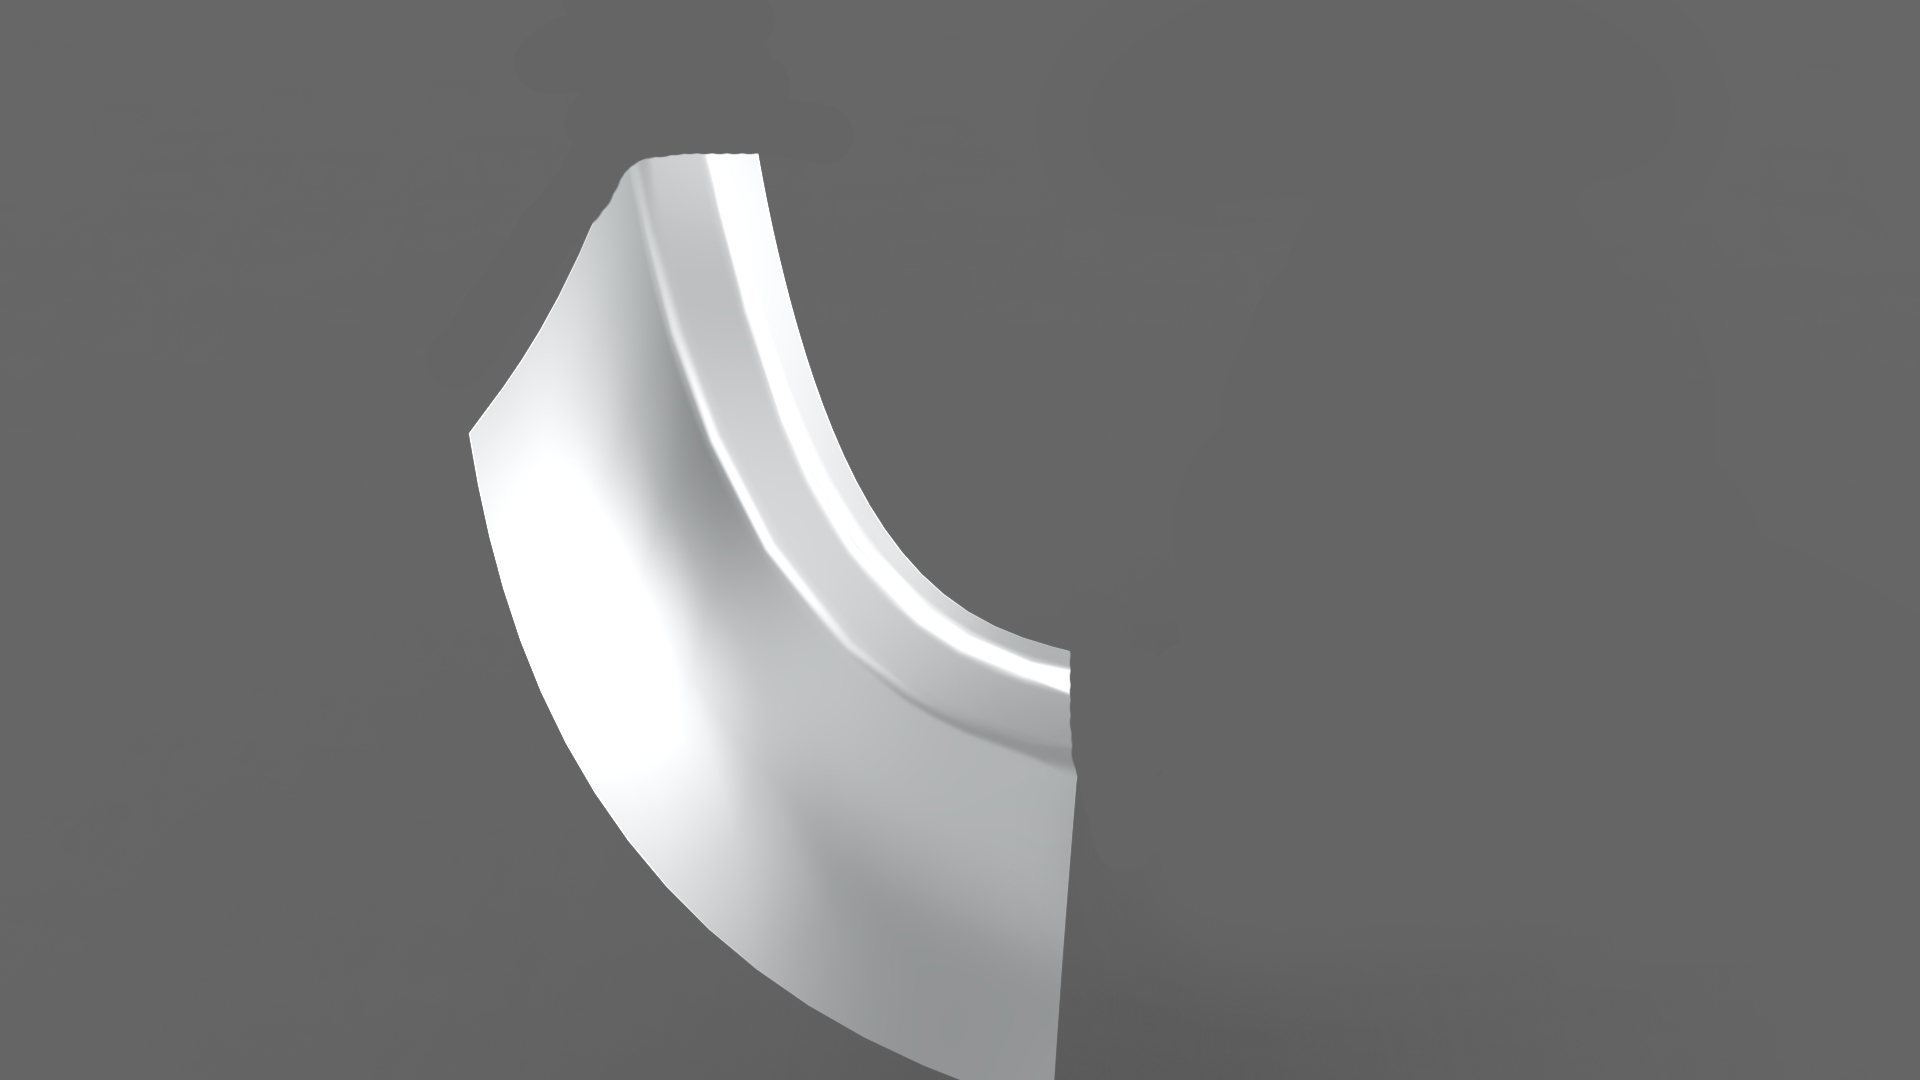 freeform glassfiber - part of fullmodel.jpg